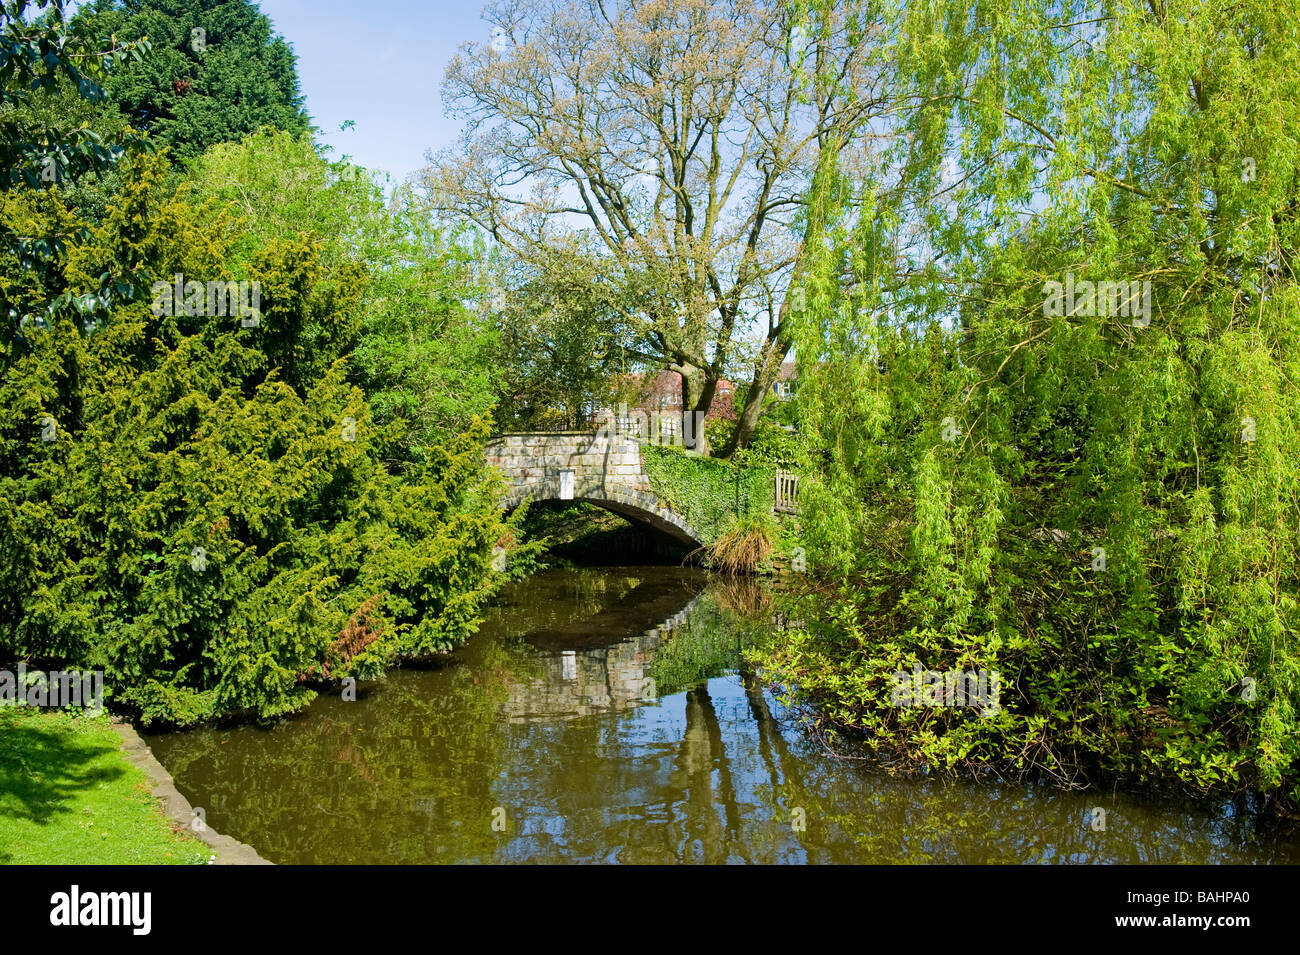 Spring Golders Hill Park Golders Green ornamental pond hump backed pedestrian bridge surrounded by trees - Stock Image